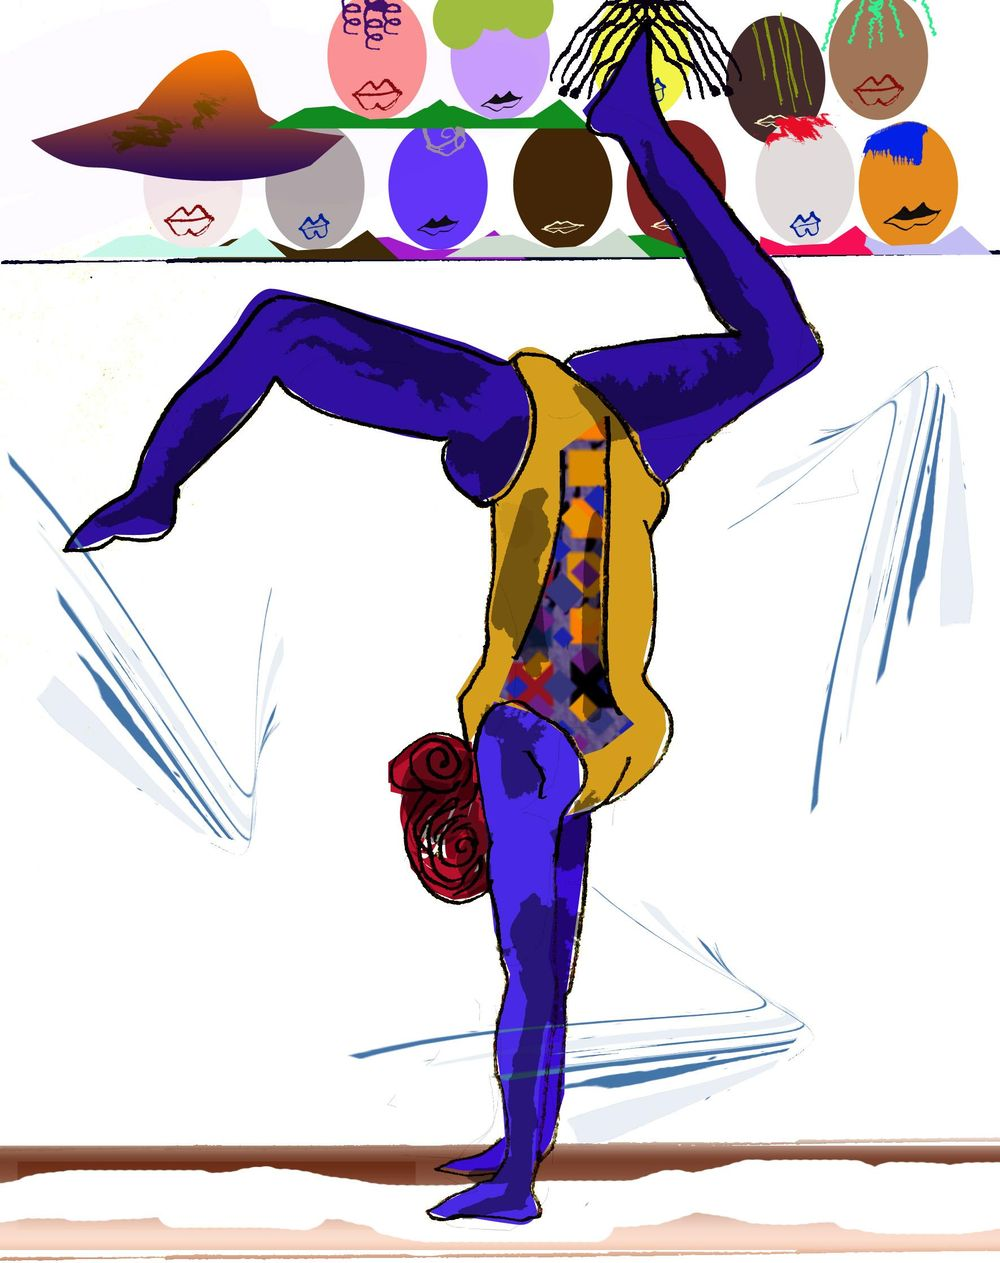 Colorful bodied gymnast by Afua - image 2 - student project